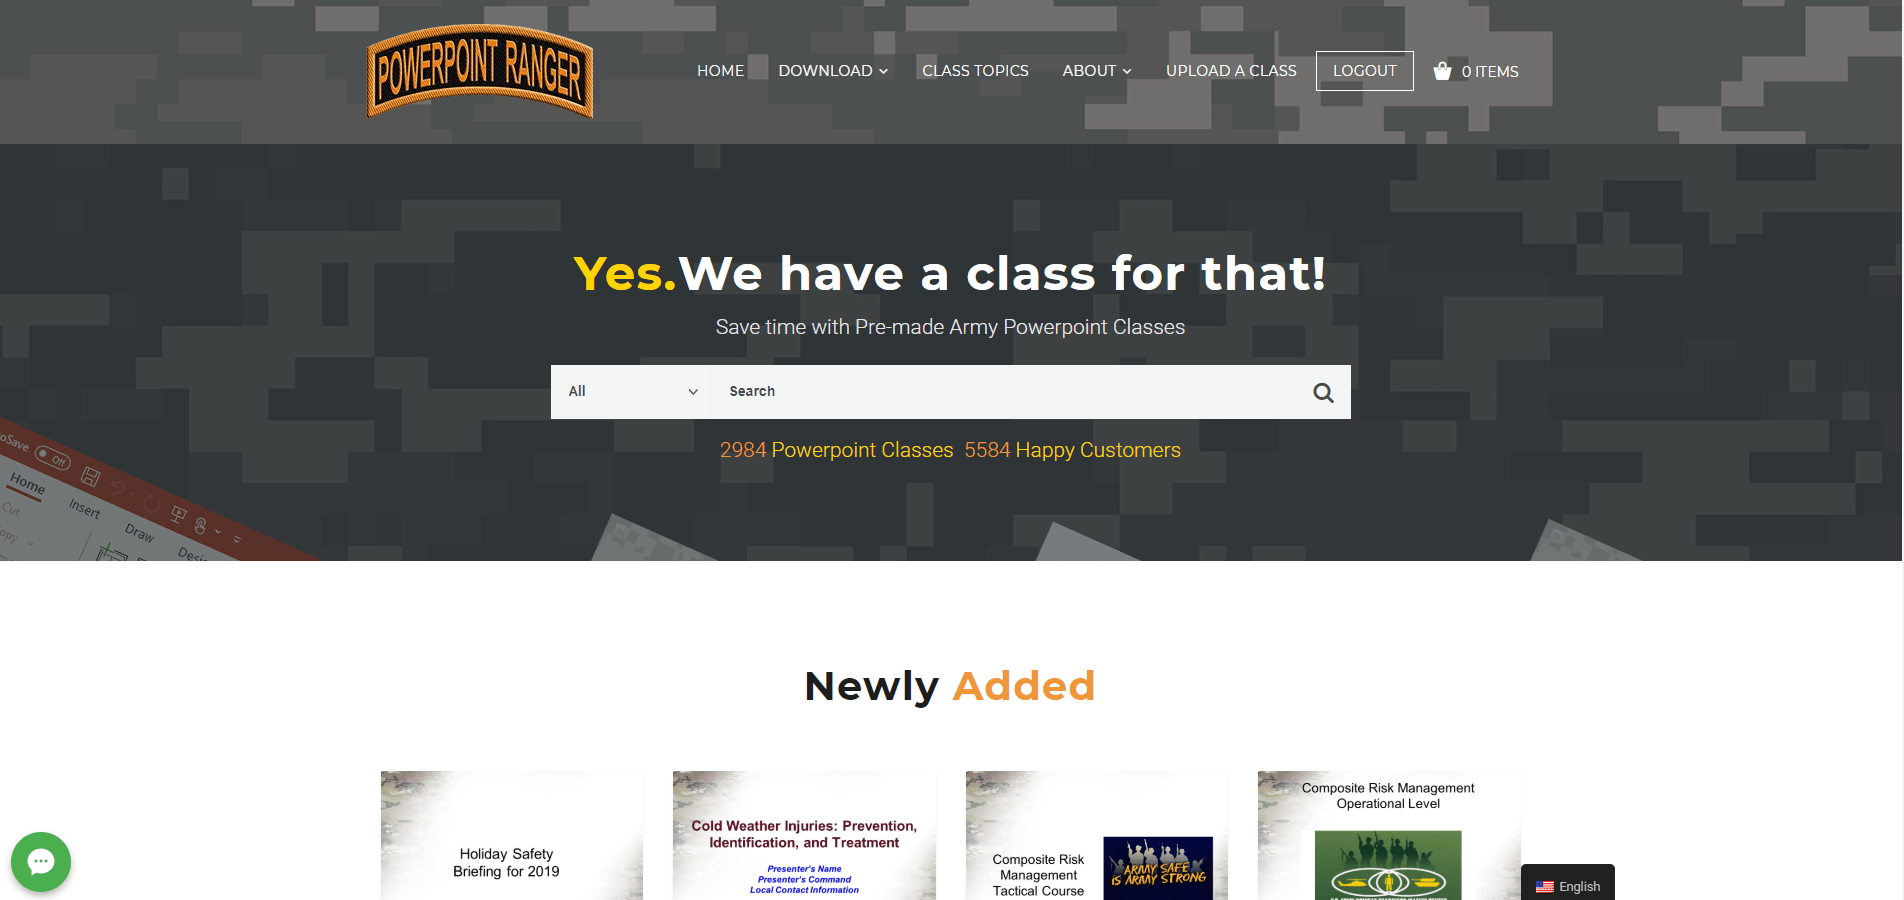 pptclasses.com screen shot of the home page